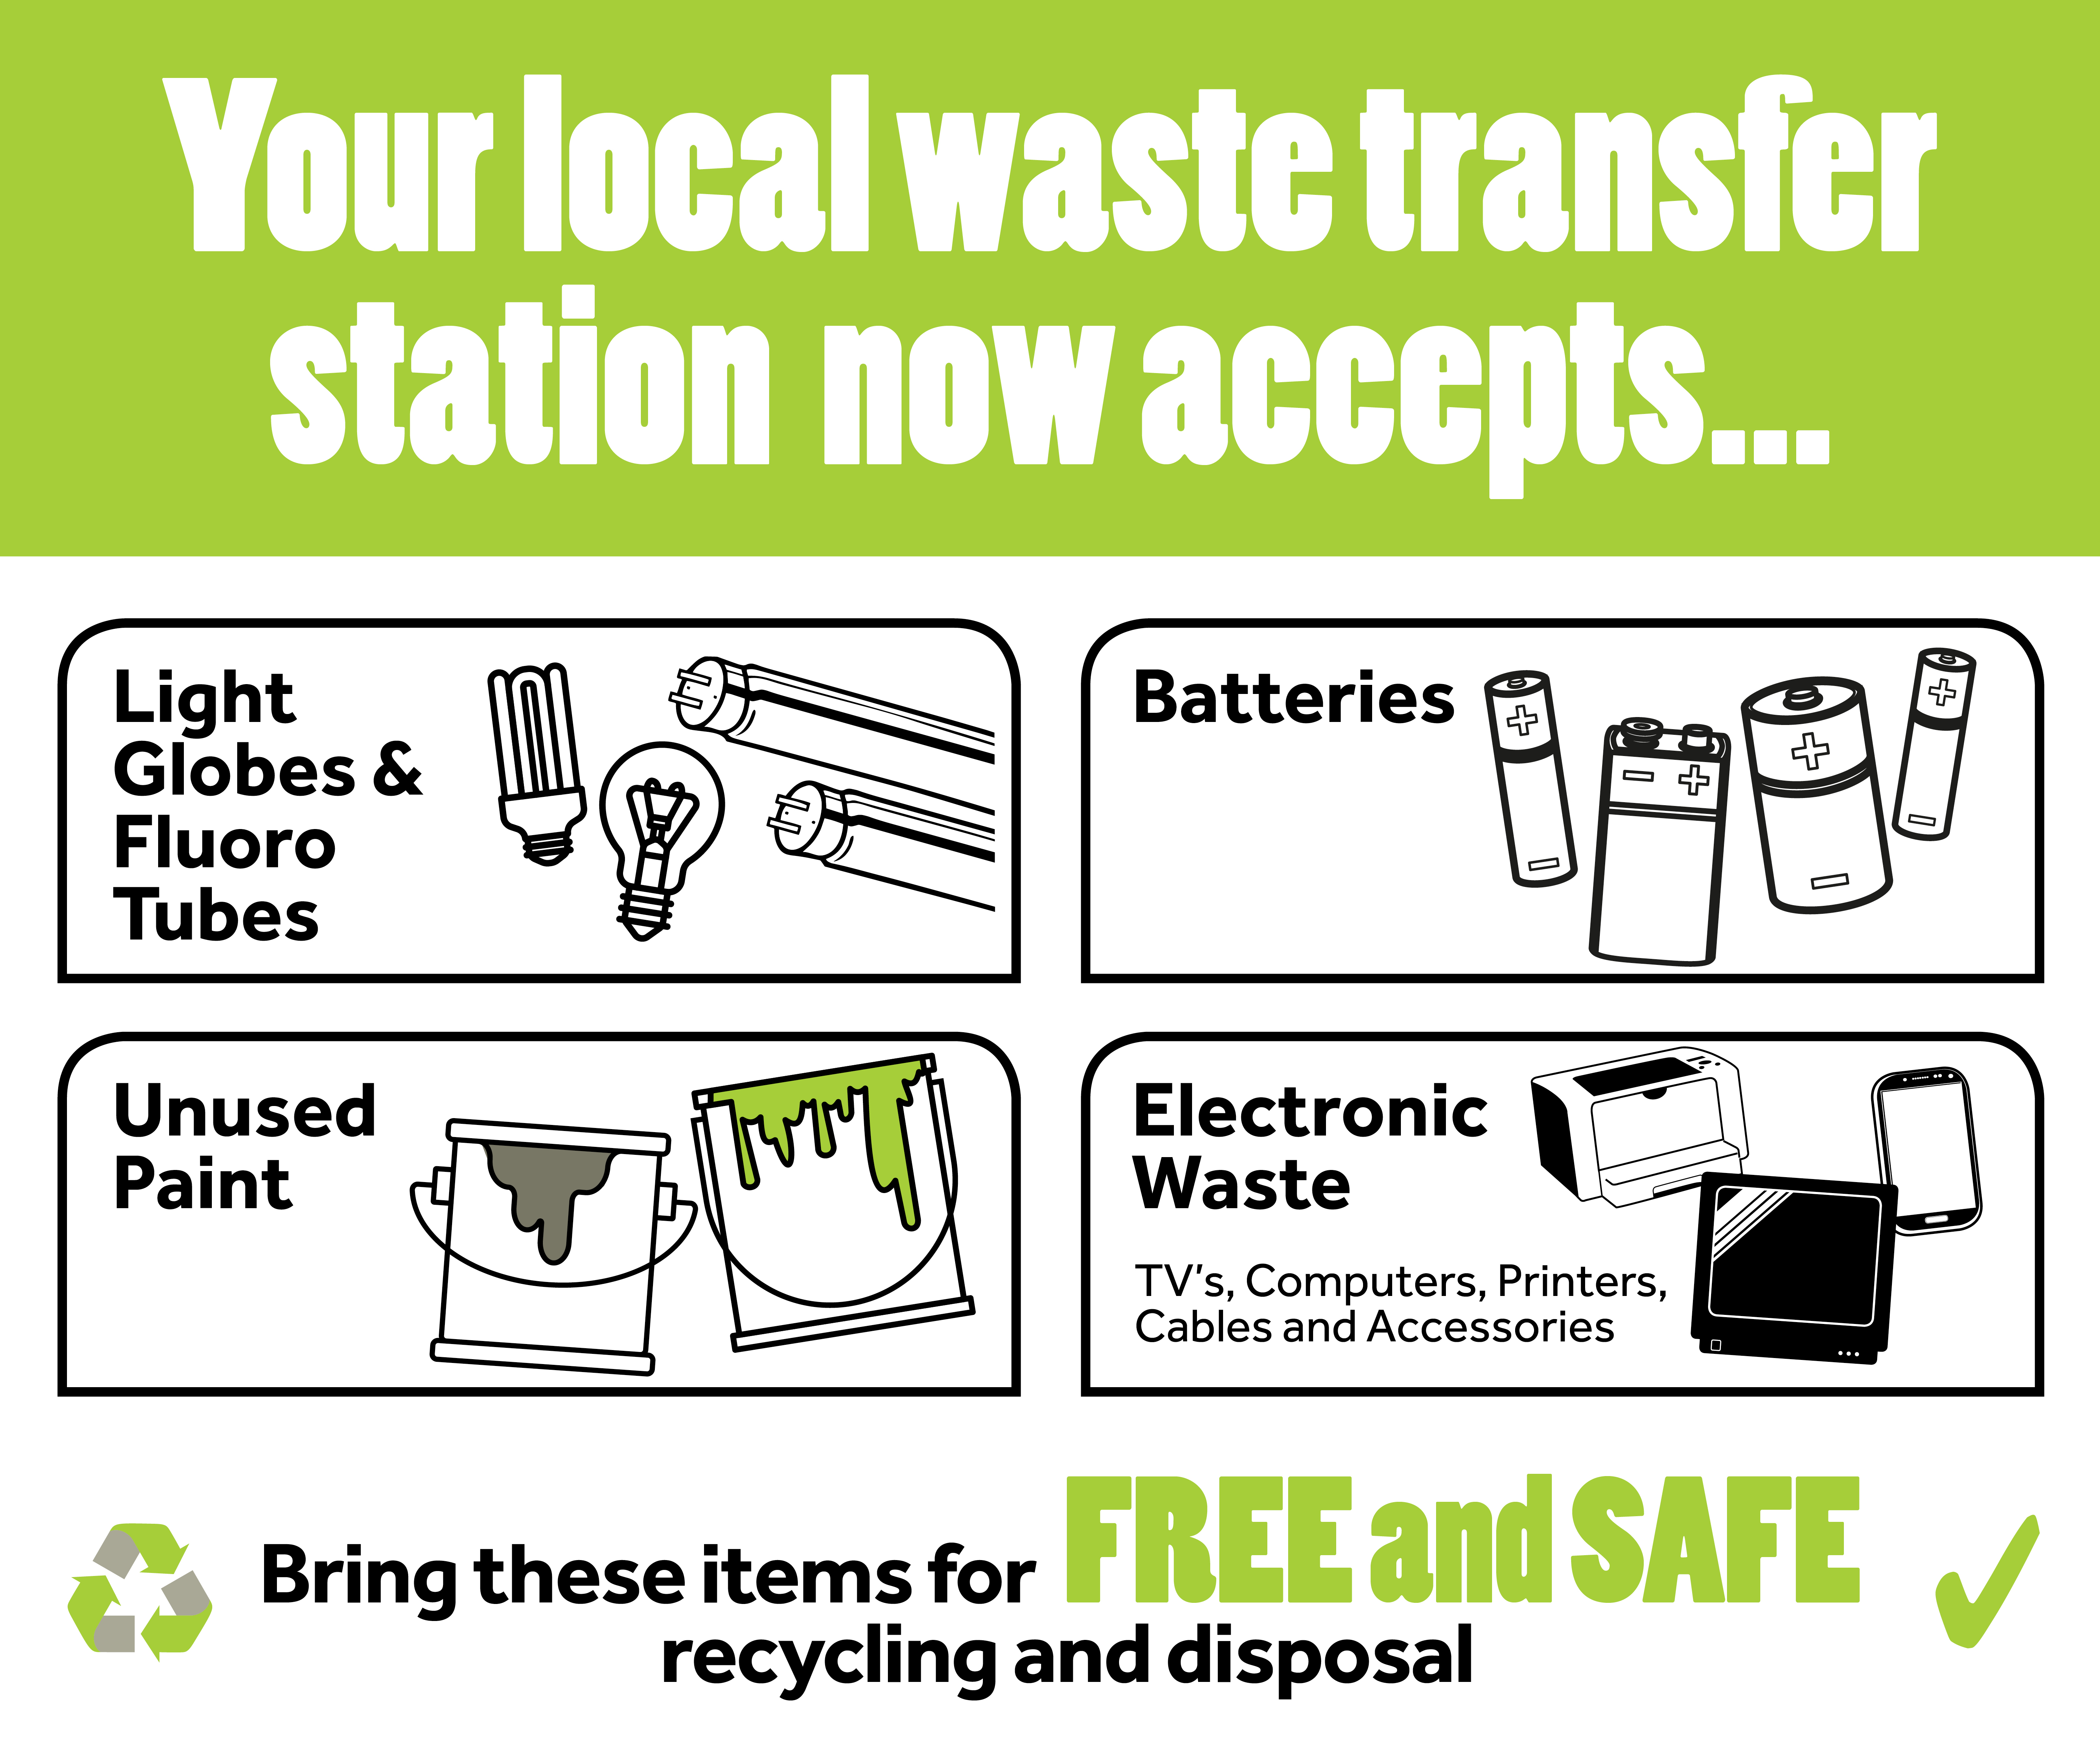 RECYCLING HAZARDOUS WASTE | WASTE TRANSFER STATIONS - Central Coast